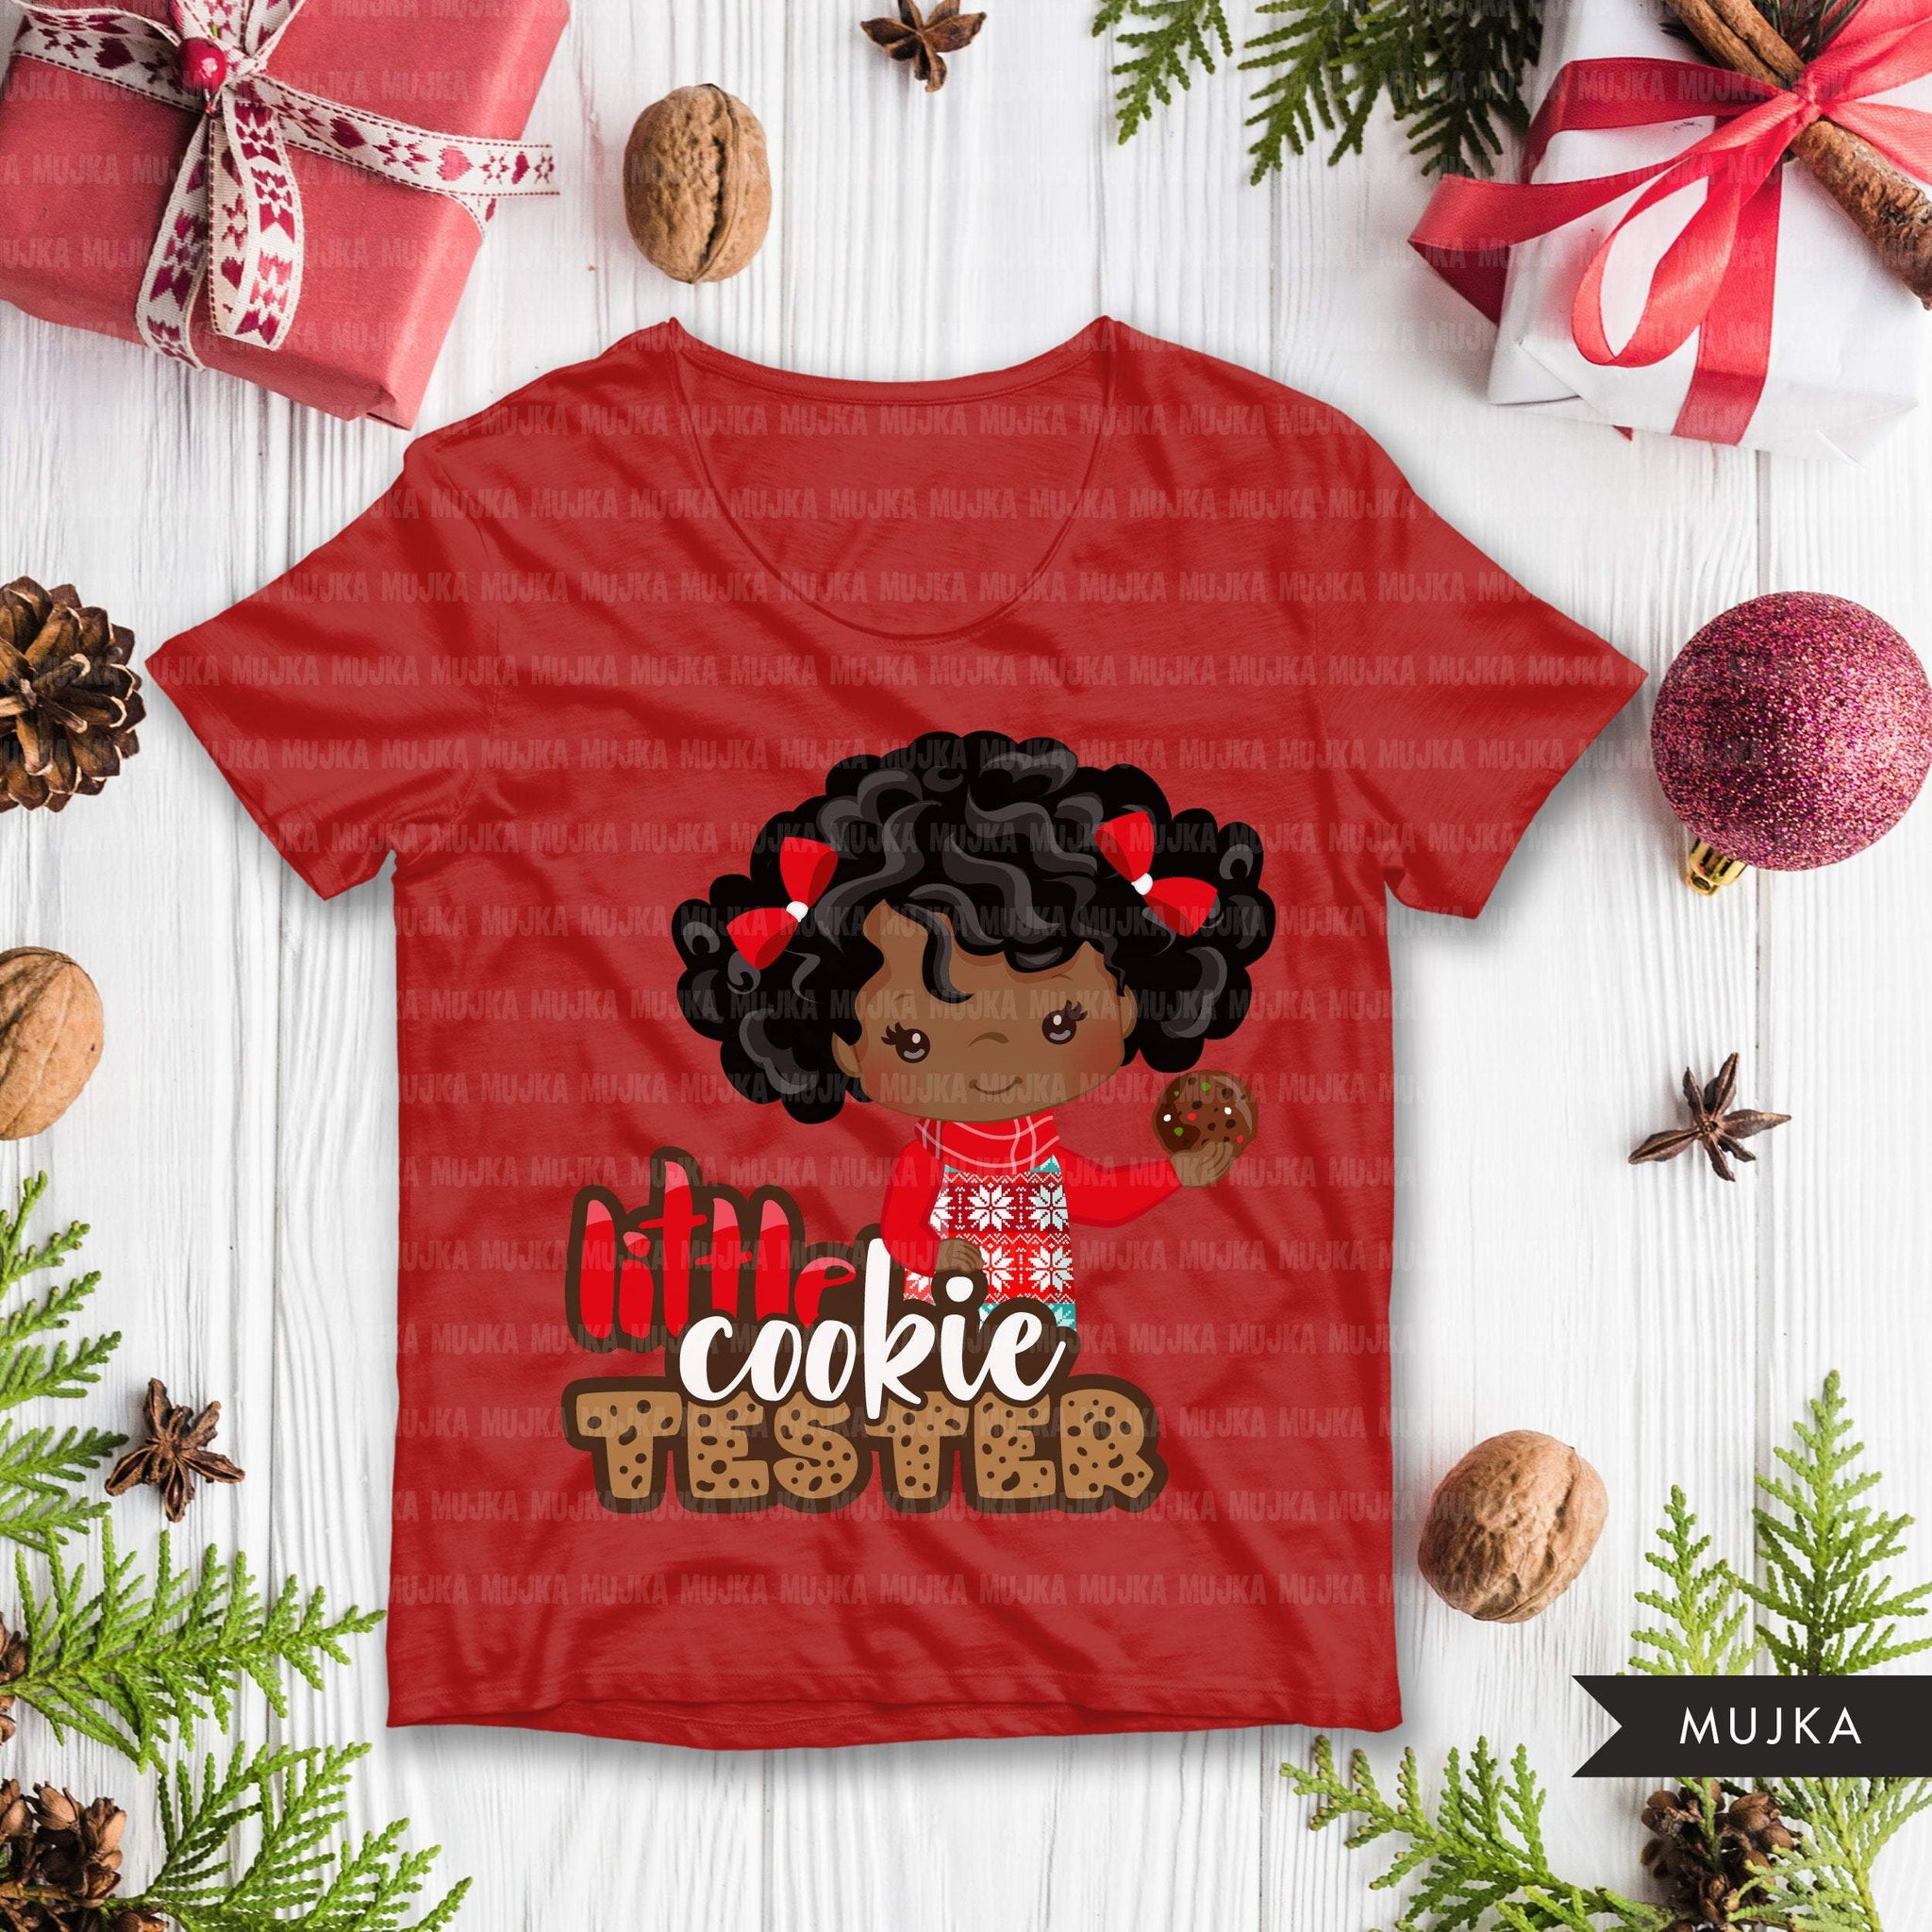 Christmas SVG PNG digital, Little cookie Tester HTV sublimation image transfer clipart, t-shirt black girl graphics